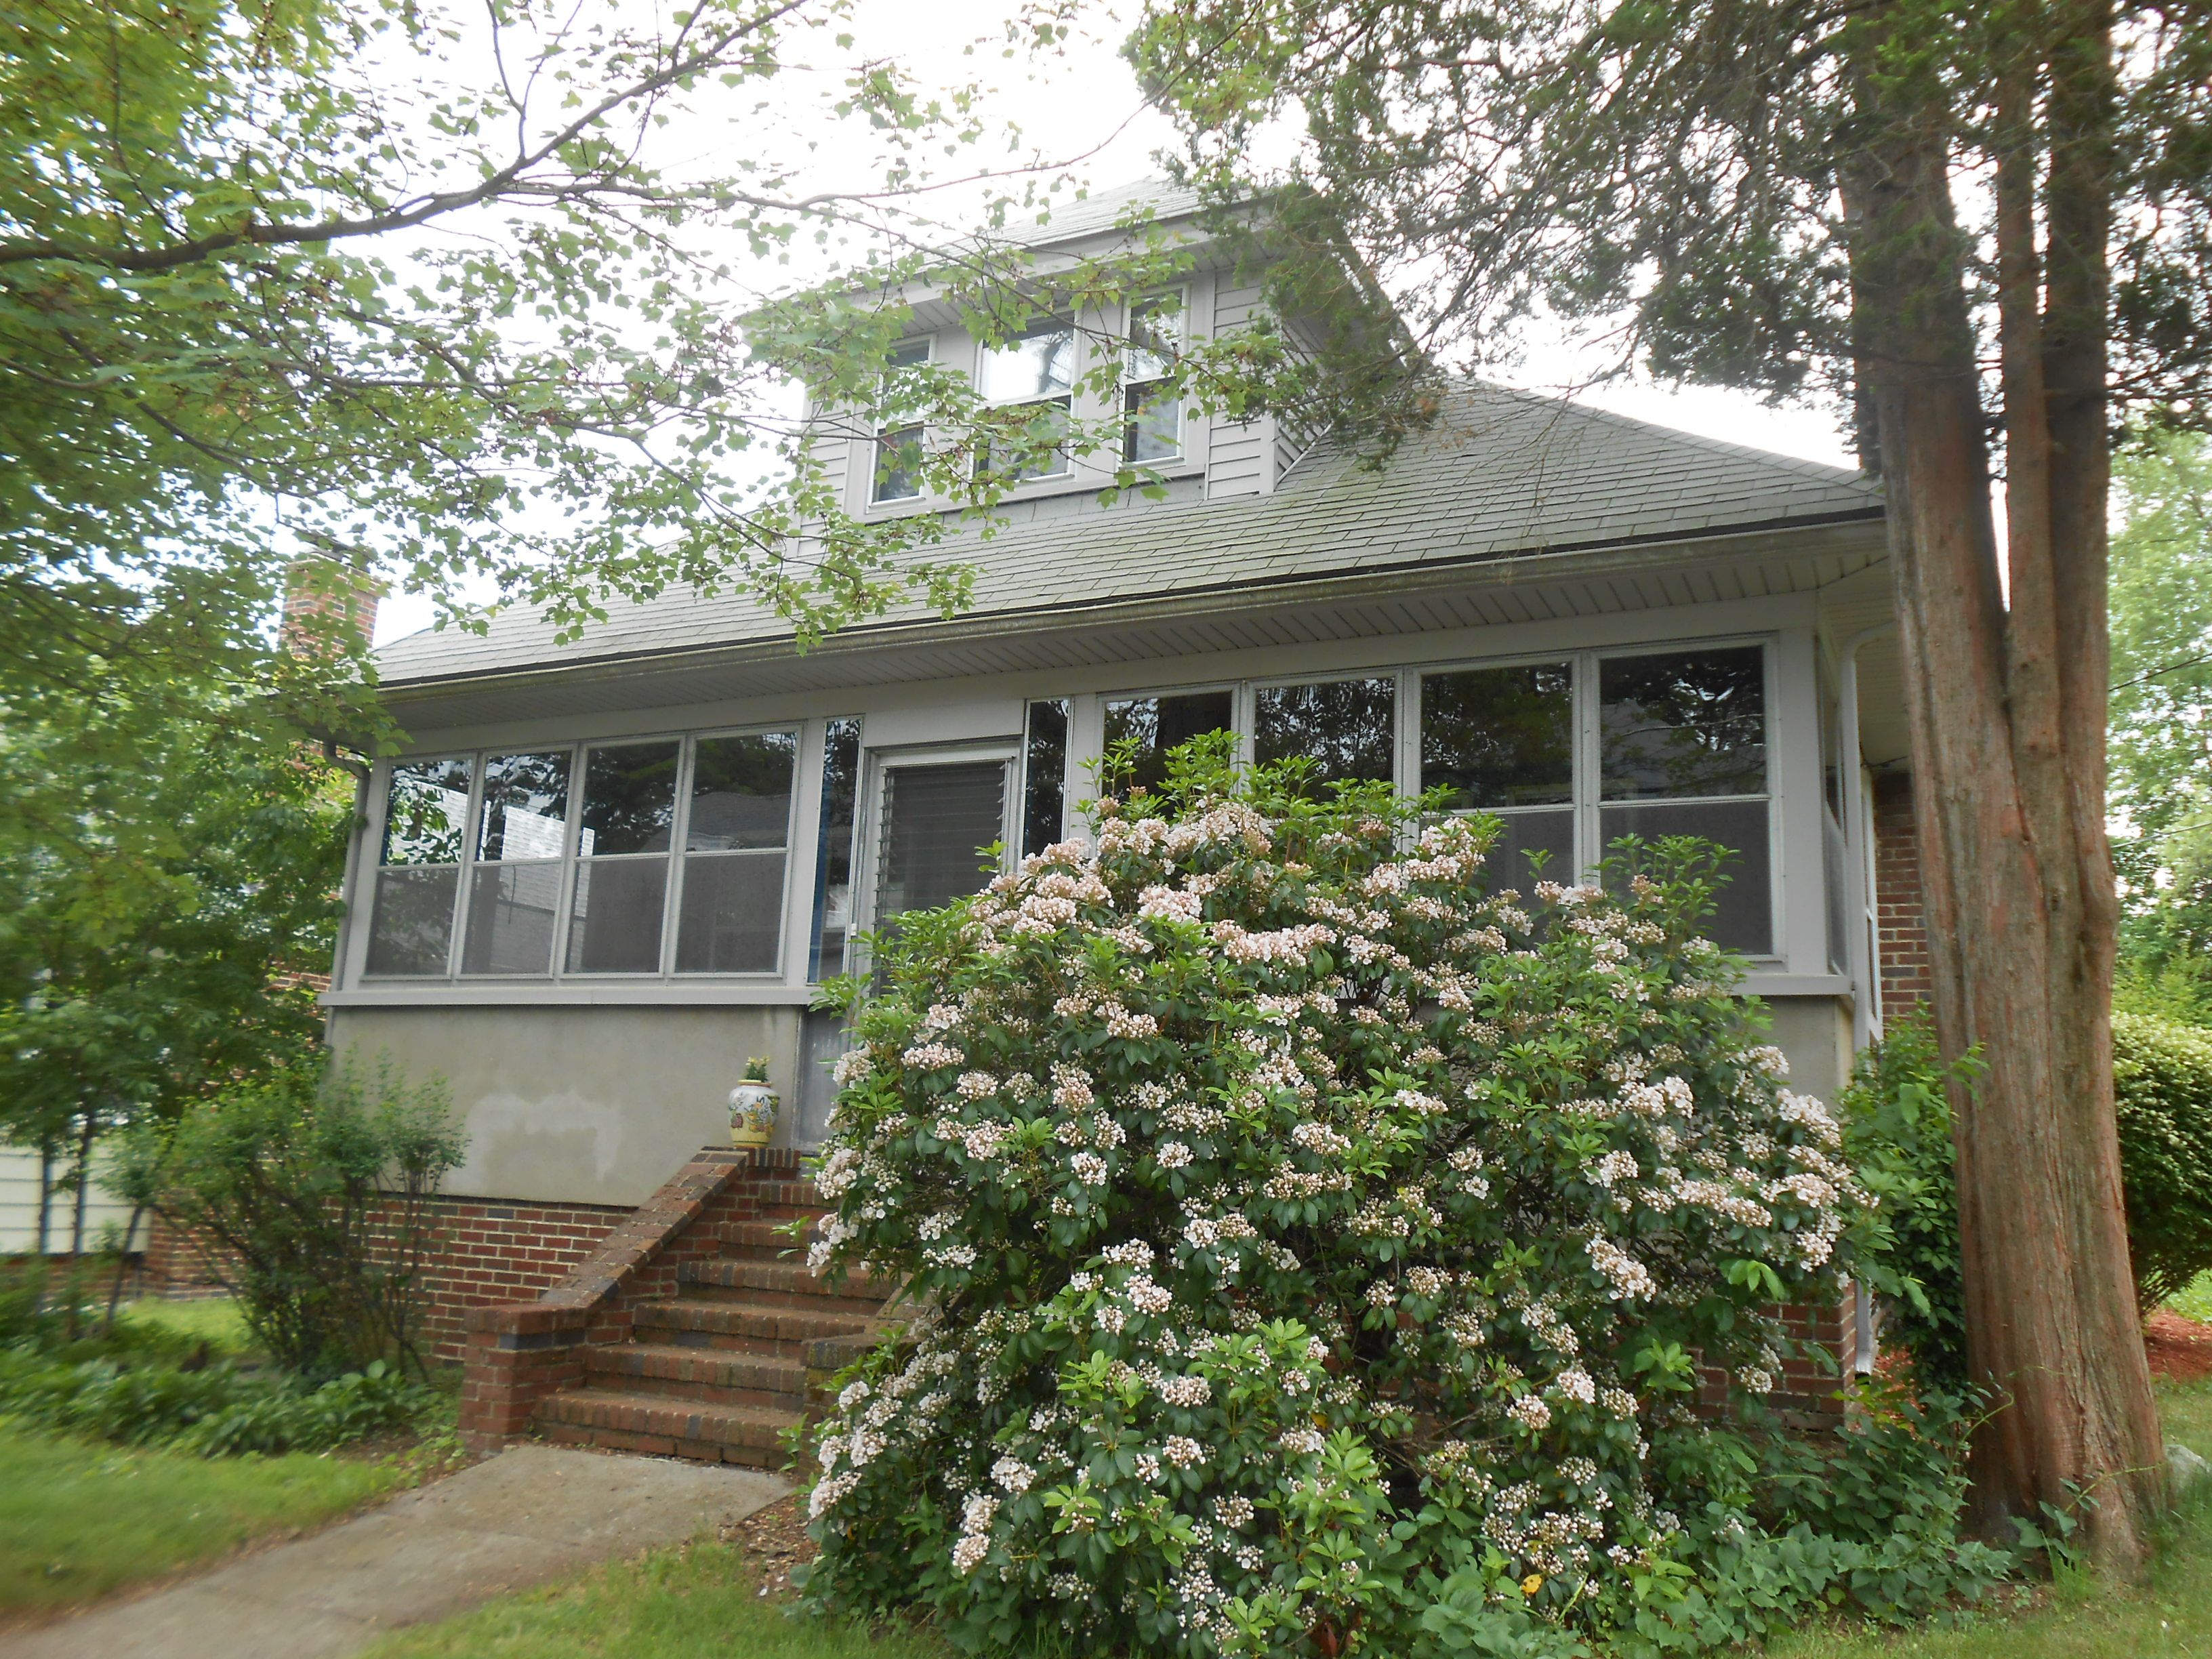 four season front porch expands iiving space in this charming bungalow - What Is Bungalow House